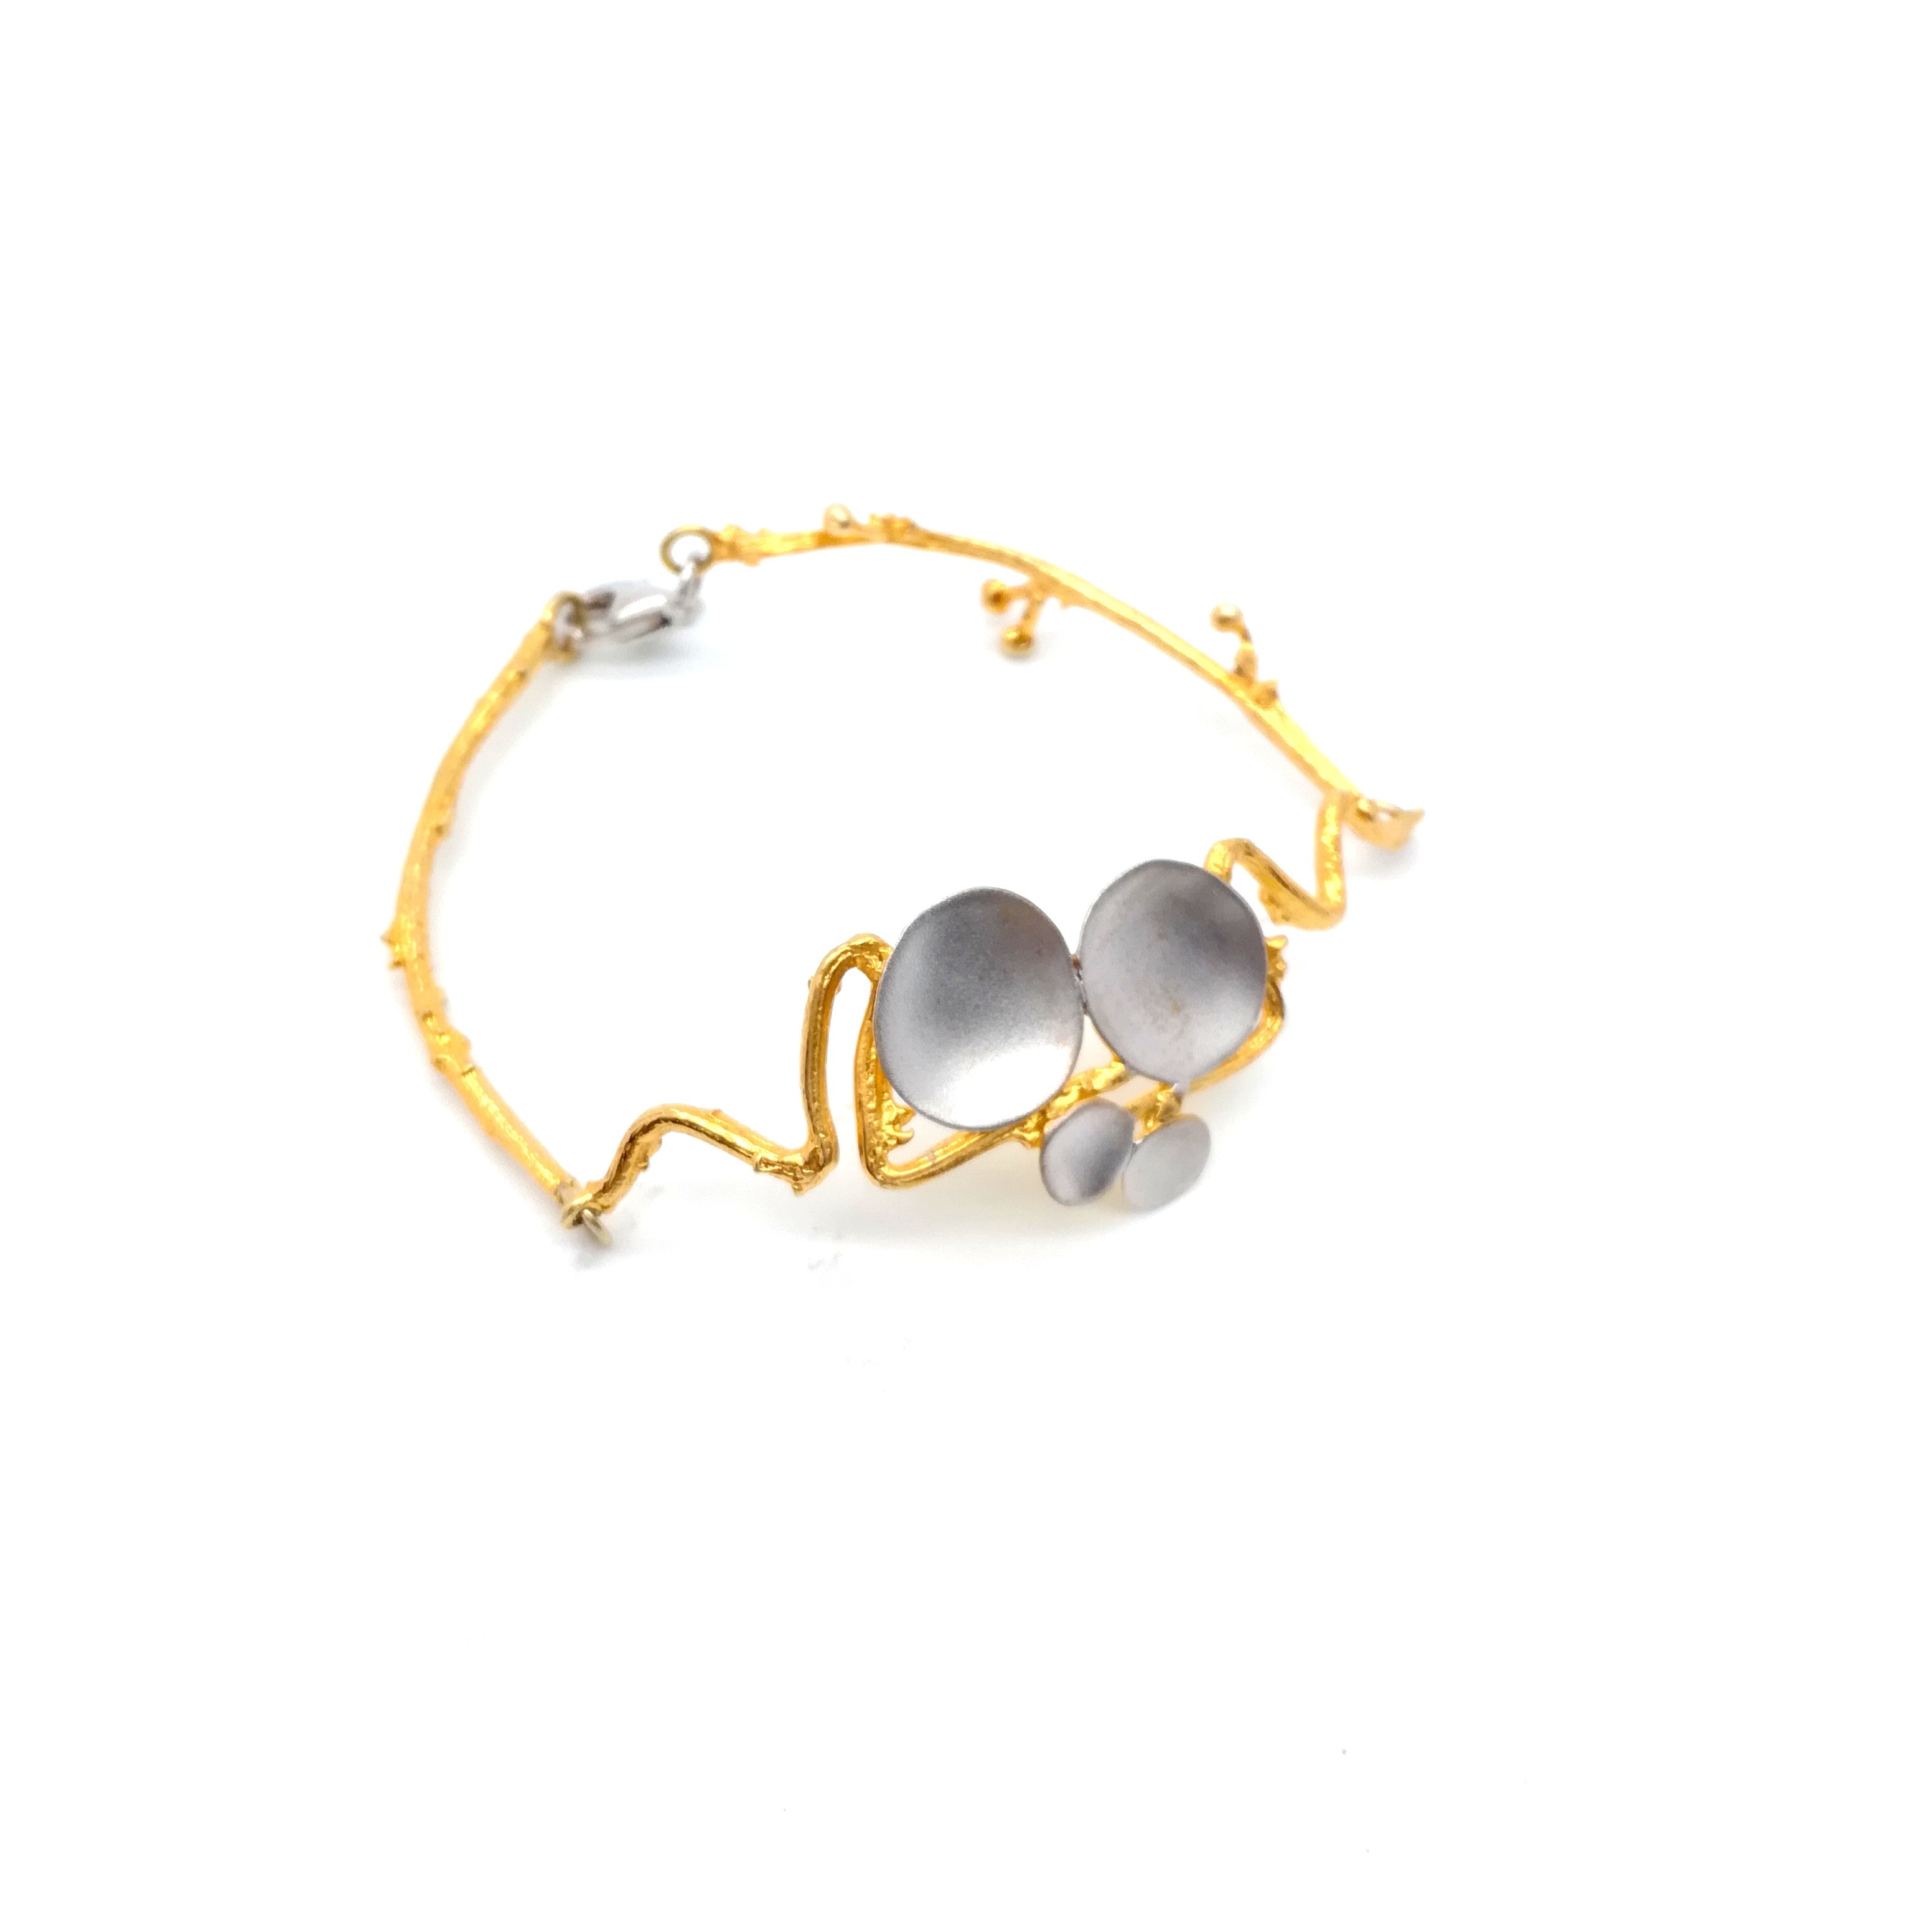 Bracelet handmade silver 925 rhodium and gold plated with pearl